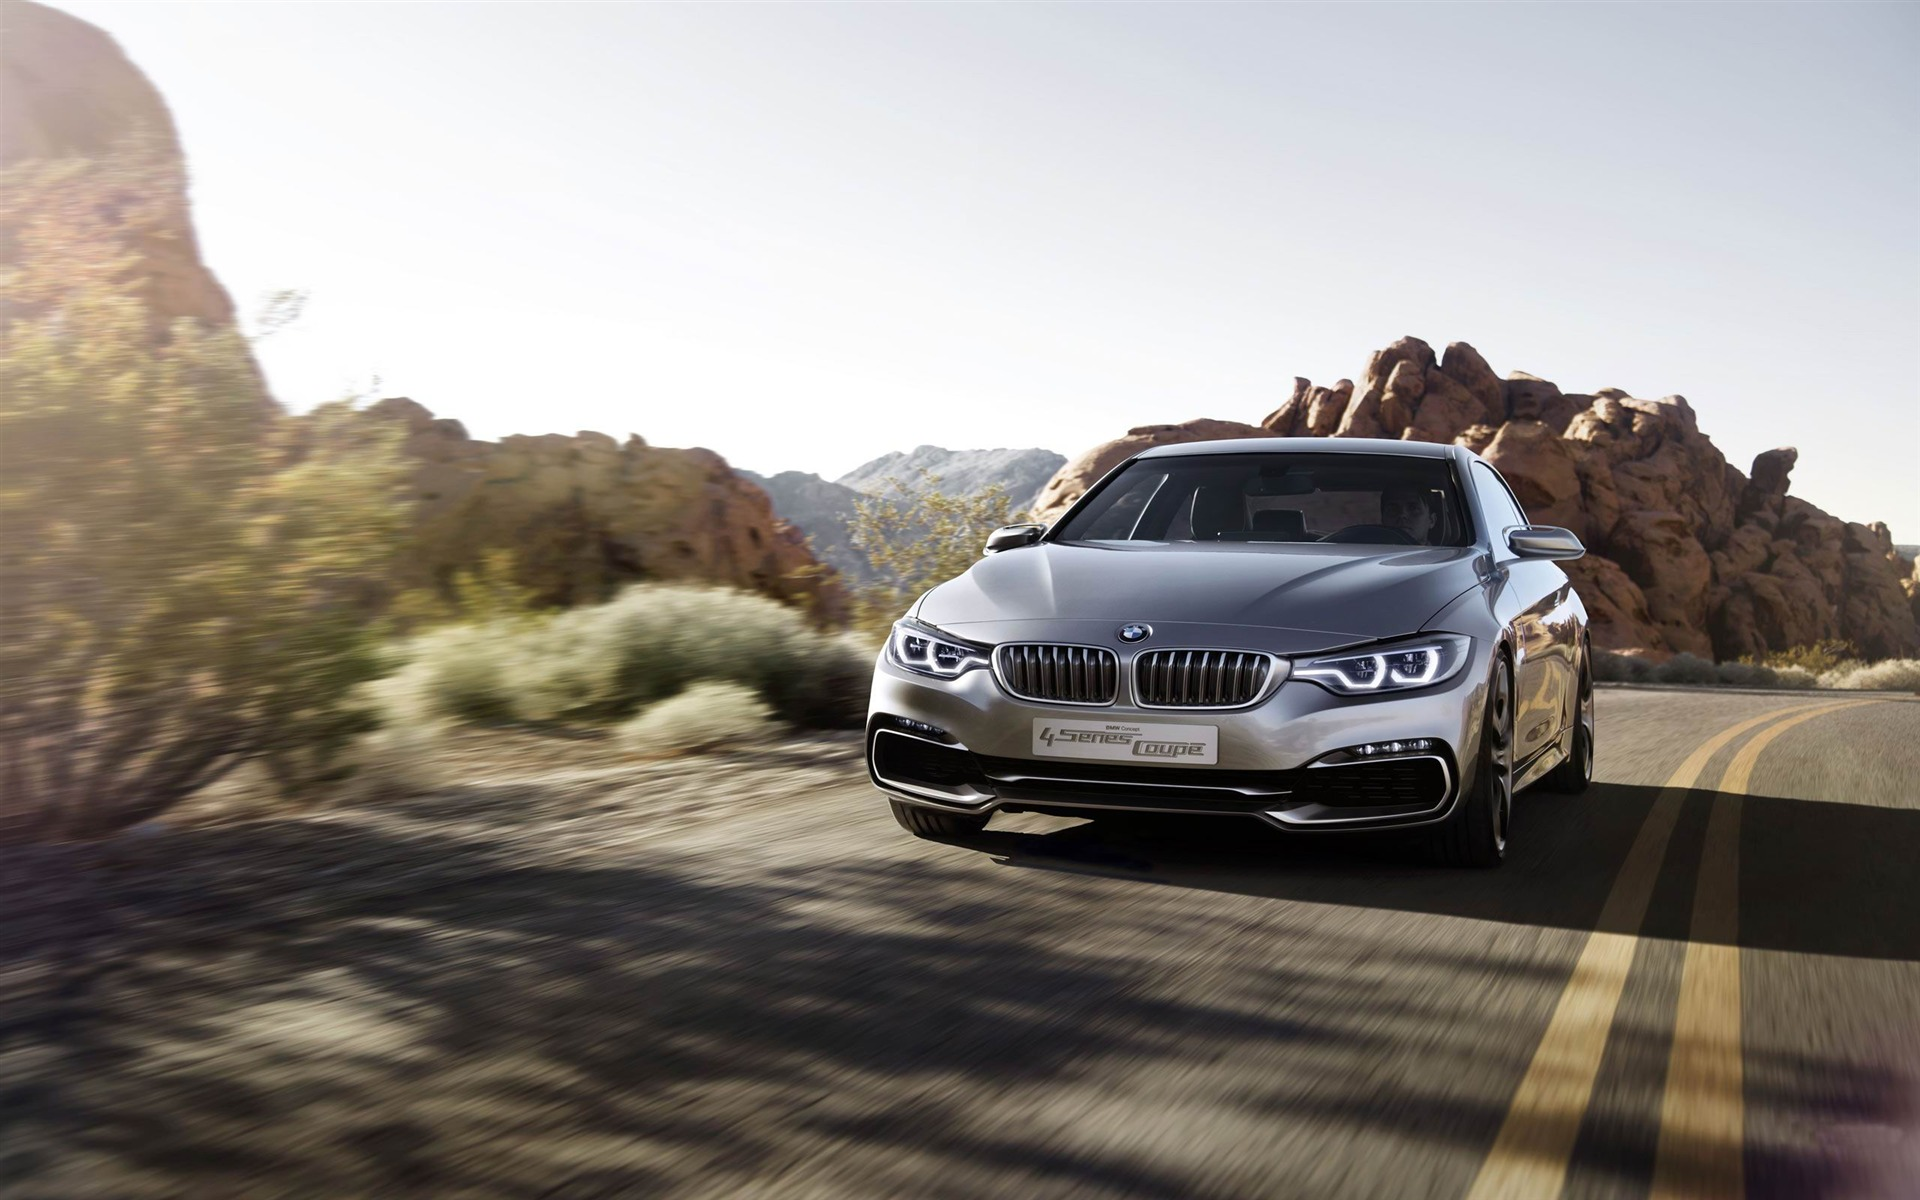 2013 BMW 4 Series Coupe Concept Auto HD Wallpaper 10 Preview ...